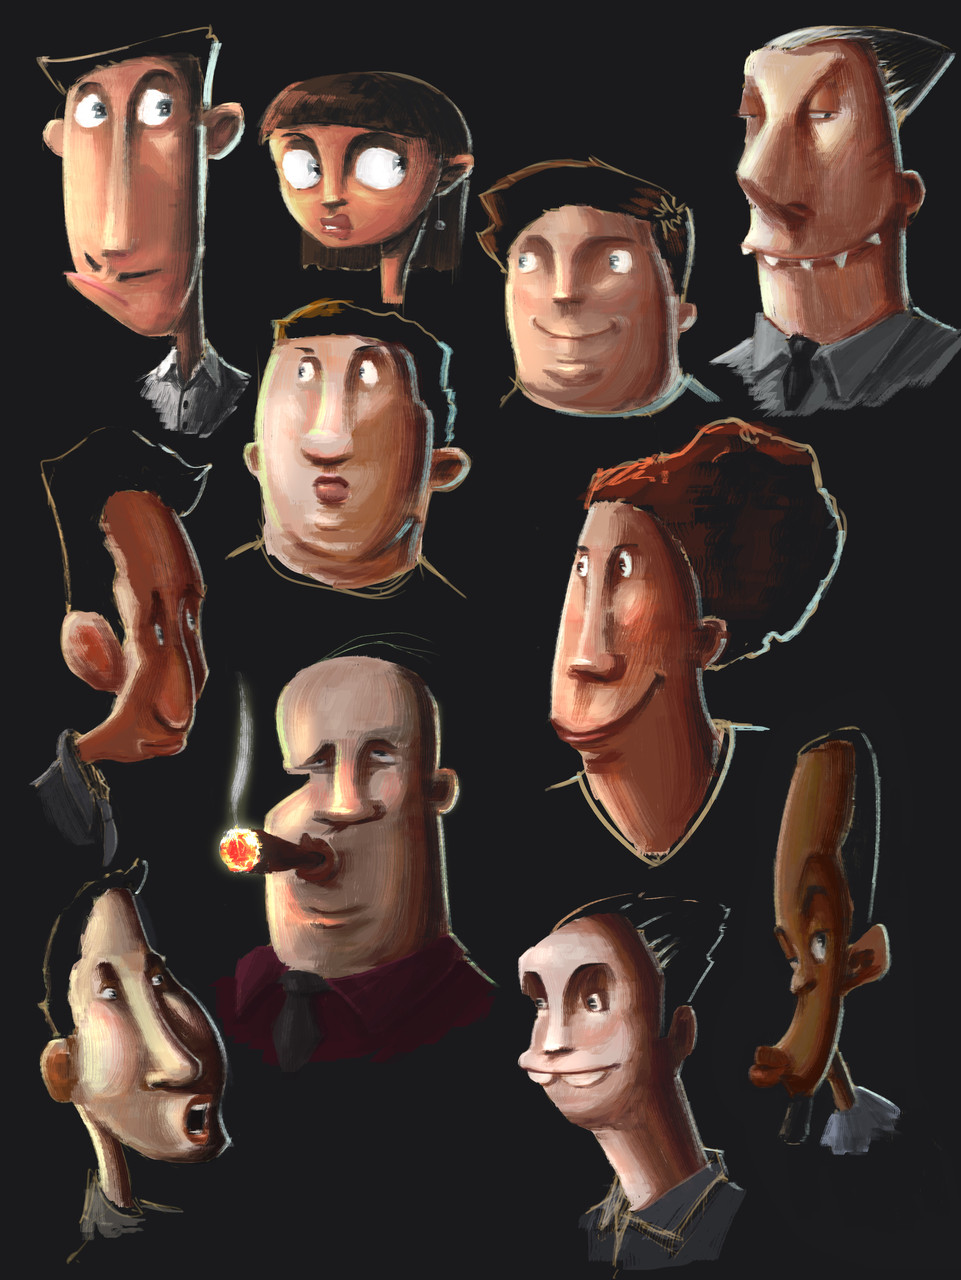 Character sheet - Peter Bartels - Illustration - Concept Art